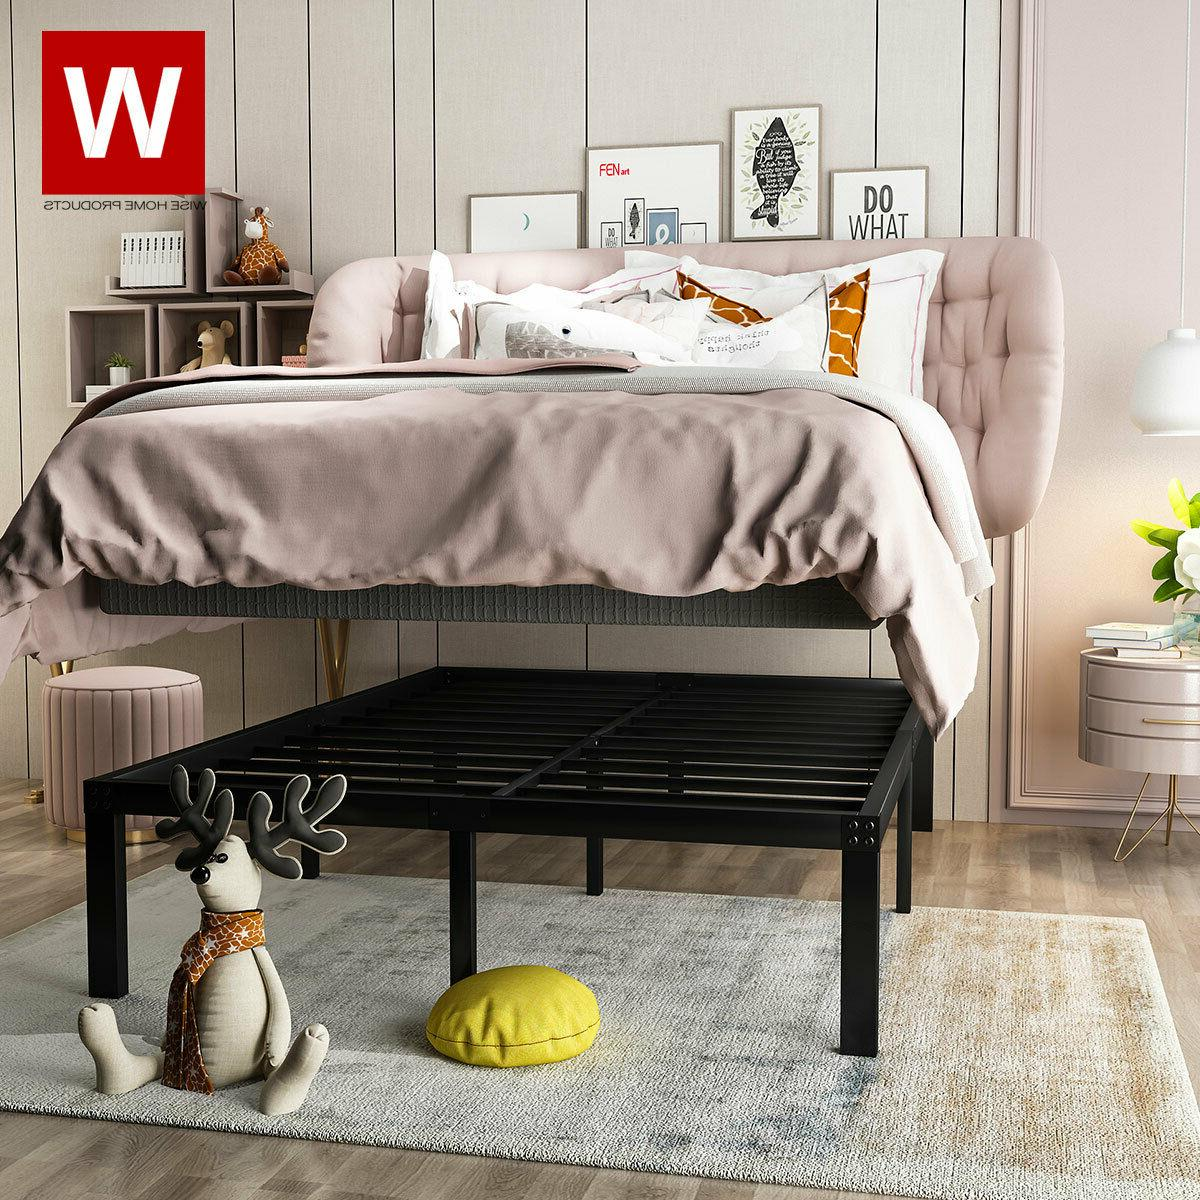 Heavy Steel Bed Frame Bed with -